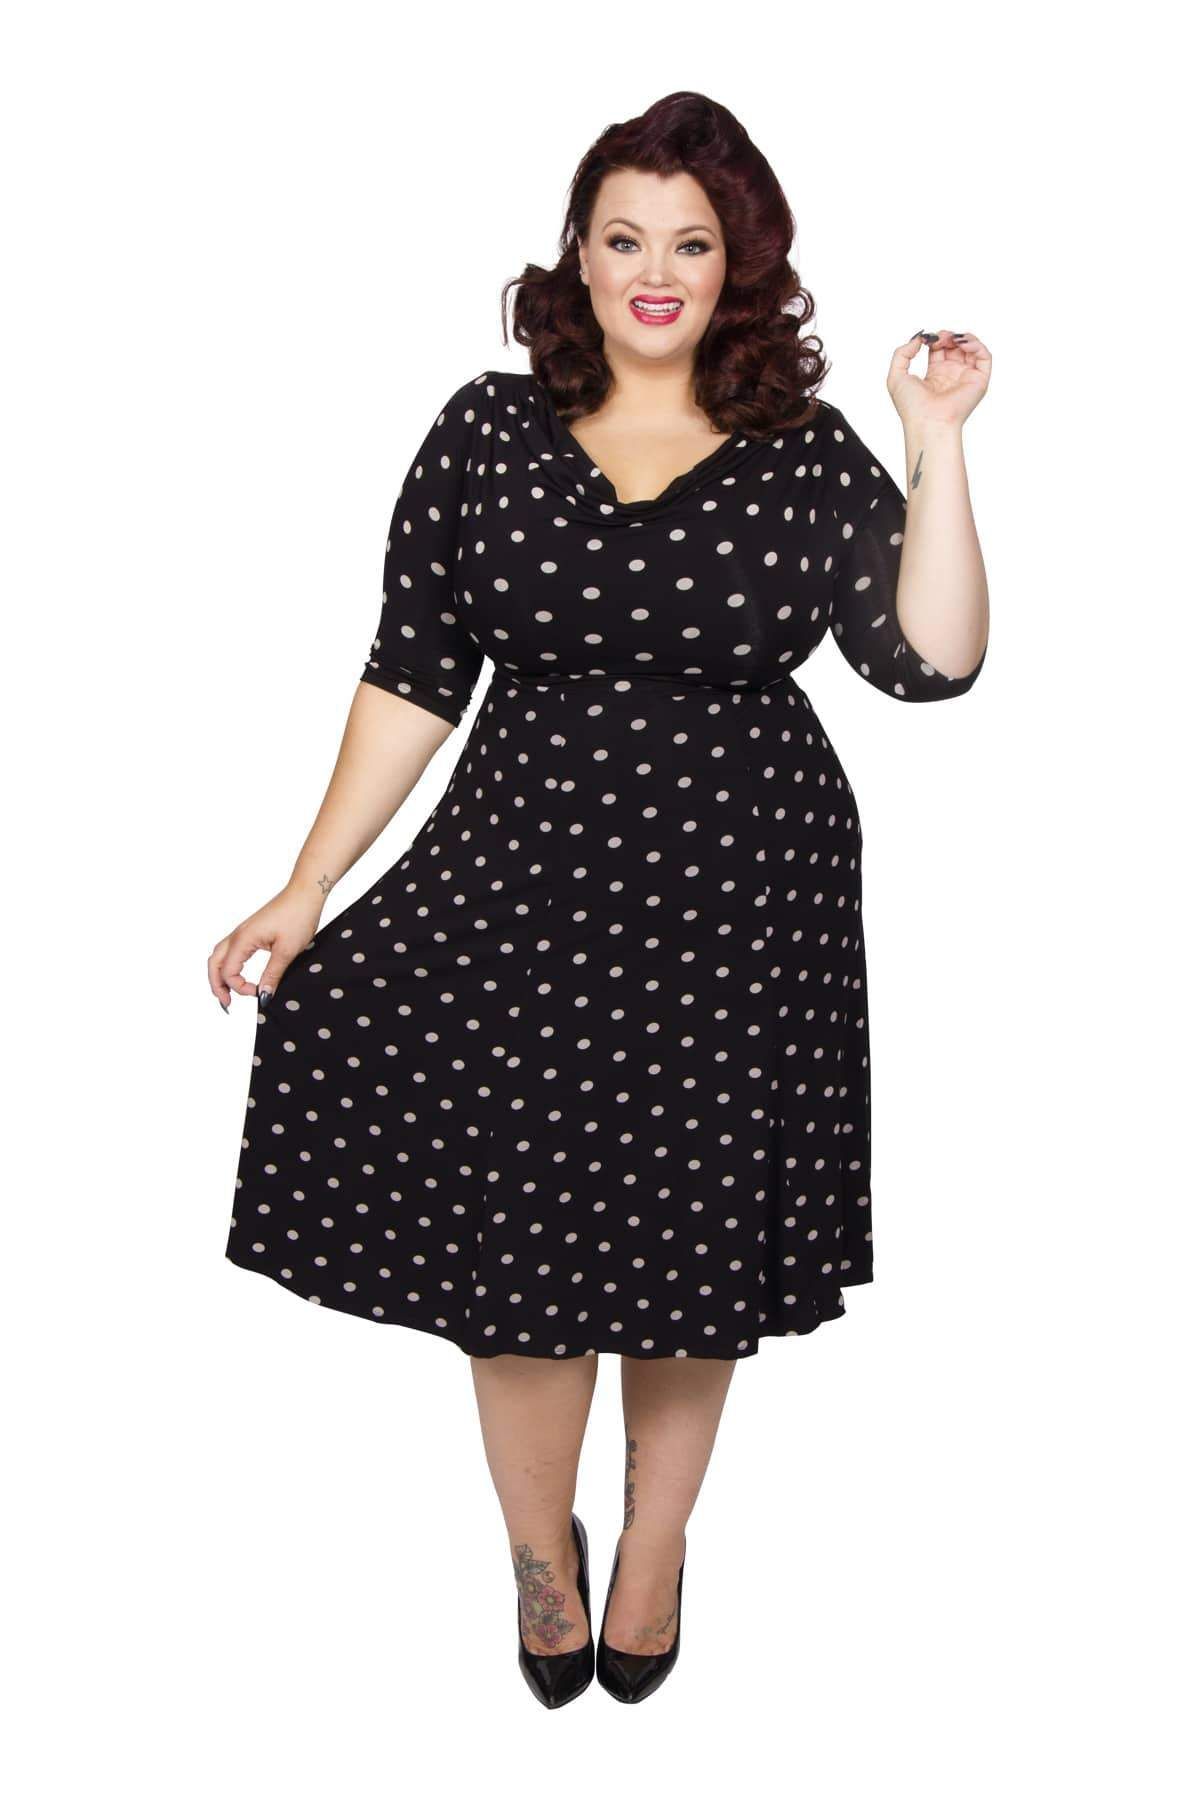 1940s Fashion Advice for Tall Women Lollidot Cowl Neck 40s Dress - BlackWhite  12 £60.00 AT vintagedancer.com